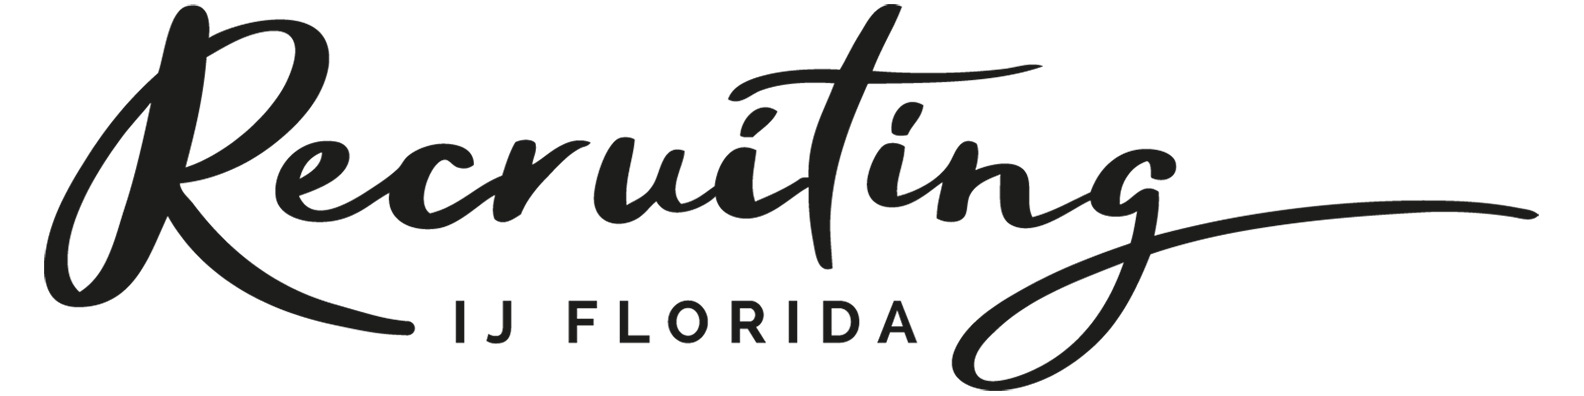 IJ Florida LLC